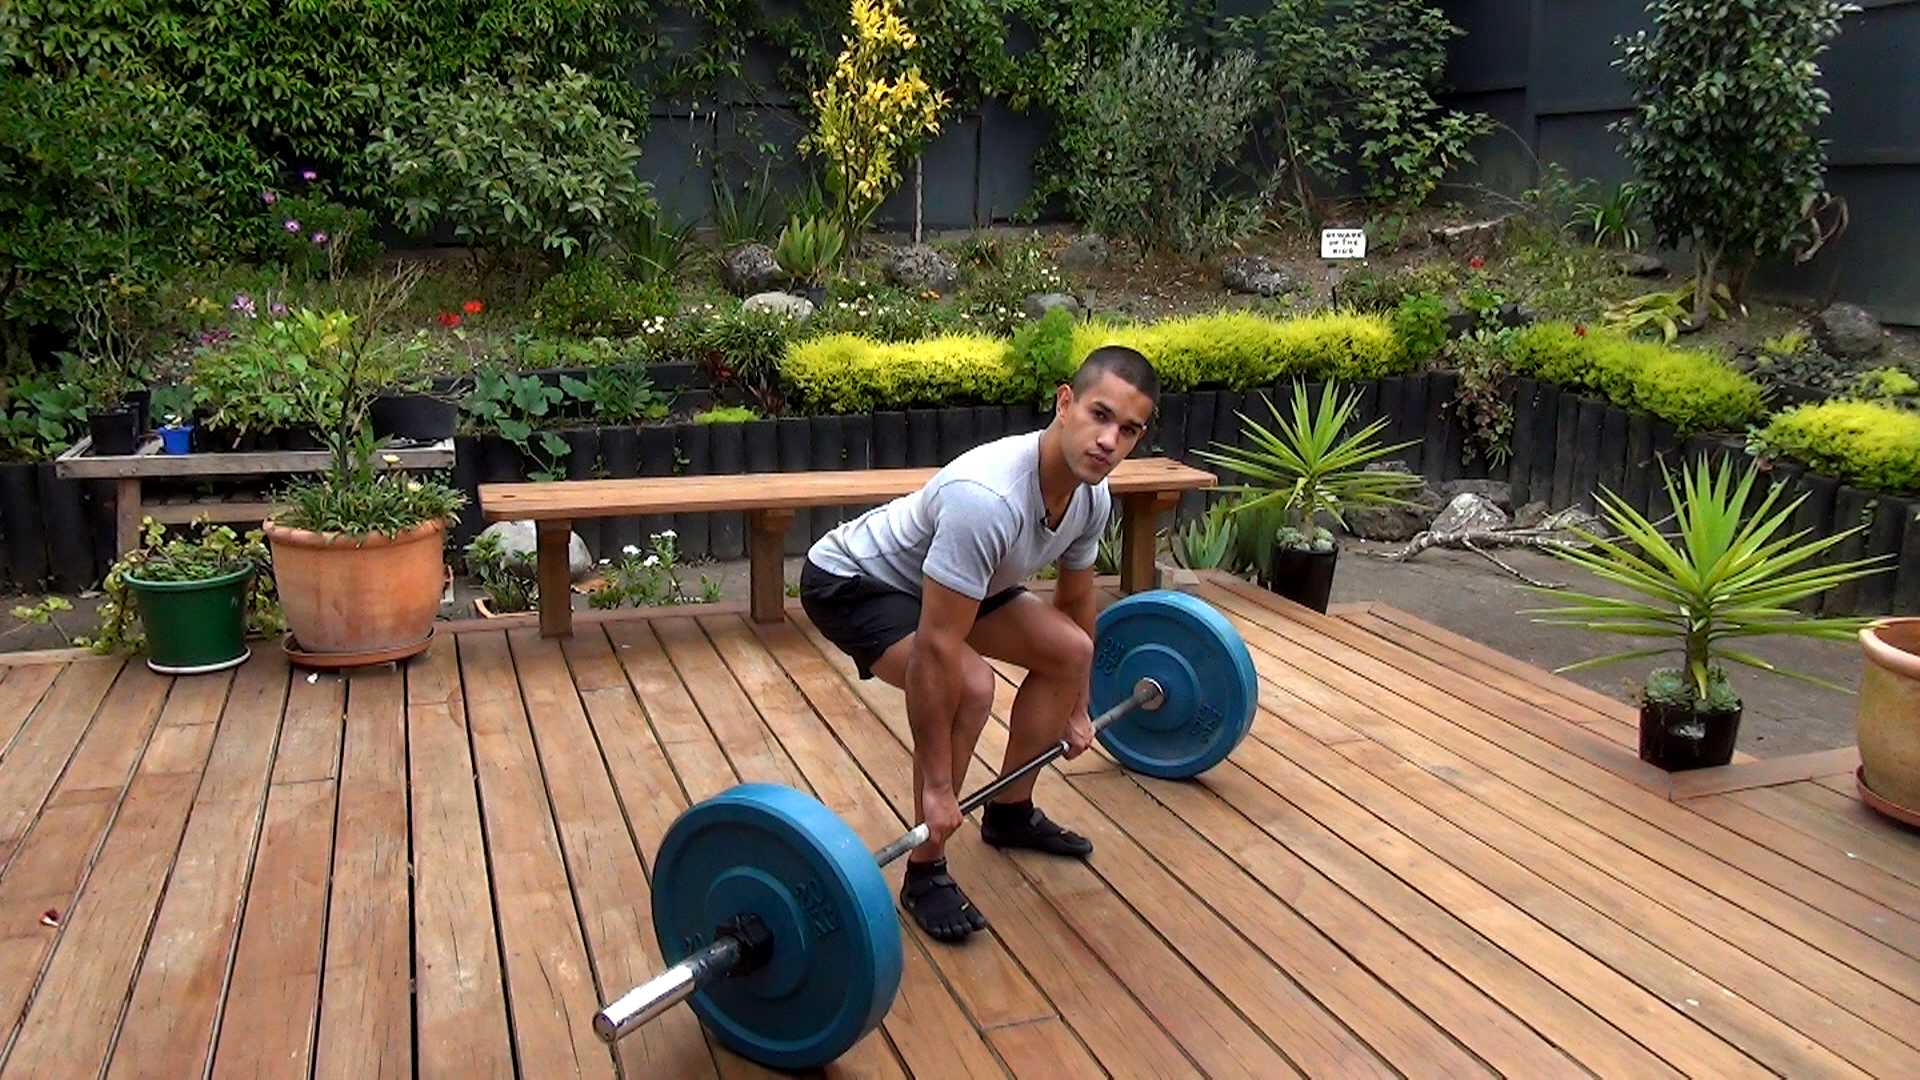 the barbell deadlift weightlifting exercise